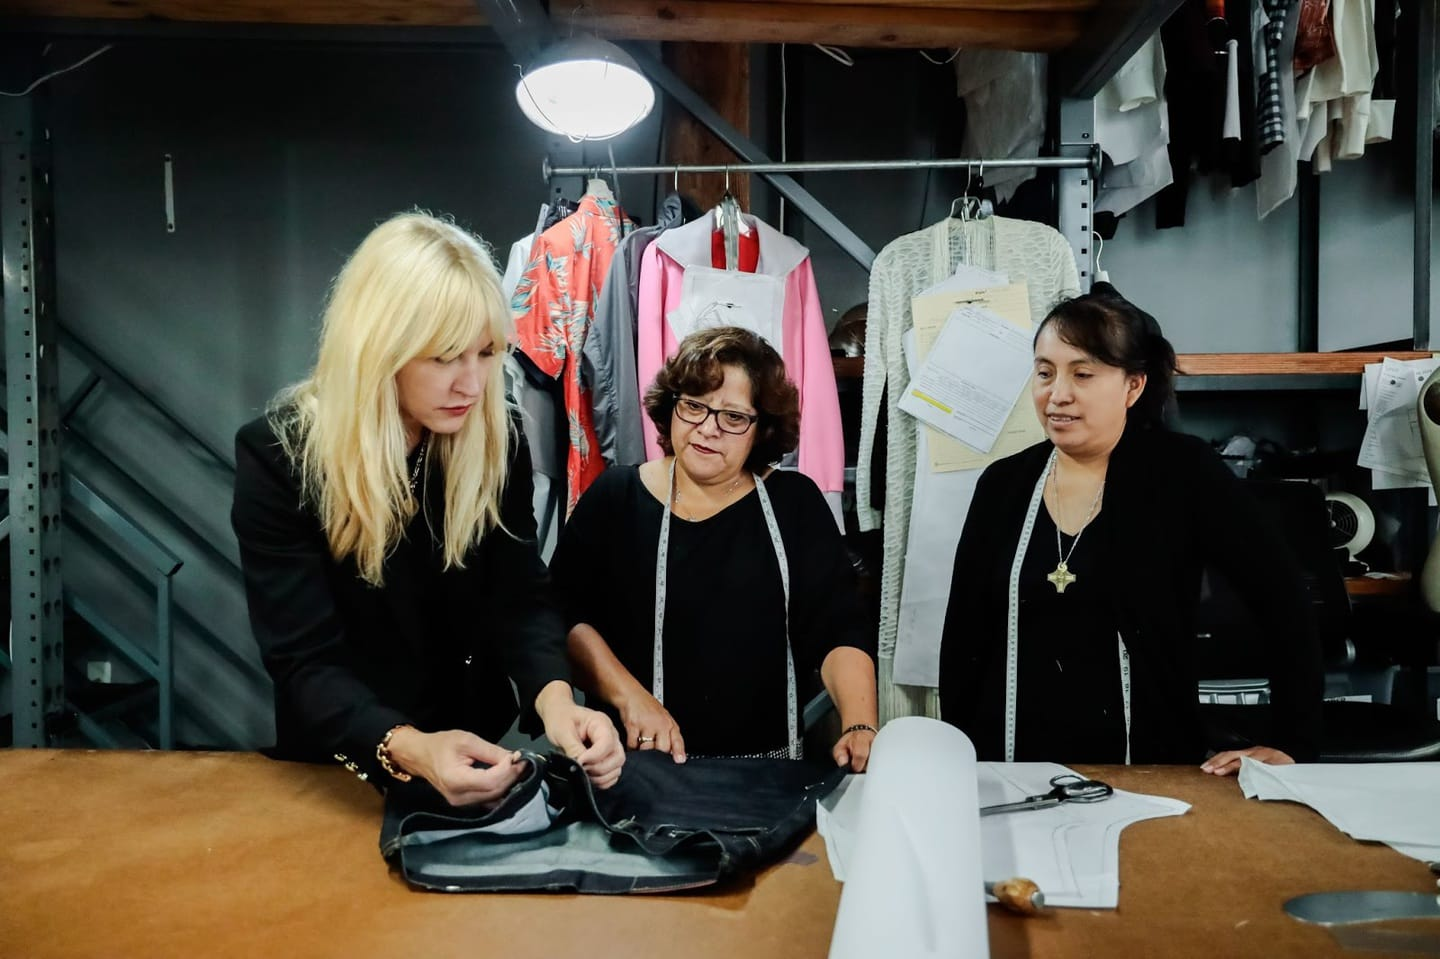 Jennifer Evans and two clothing manufacturers examining fabric and starting a clothing line